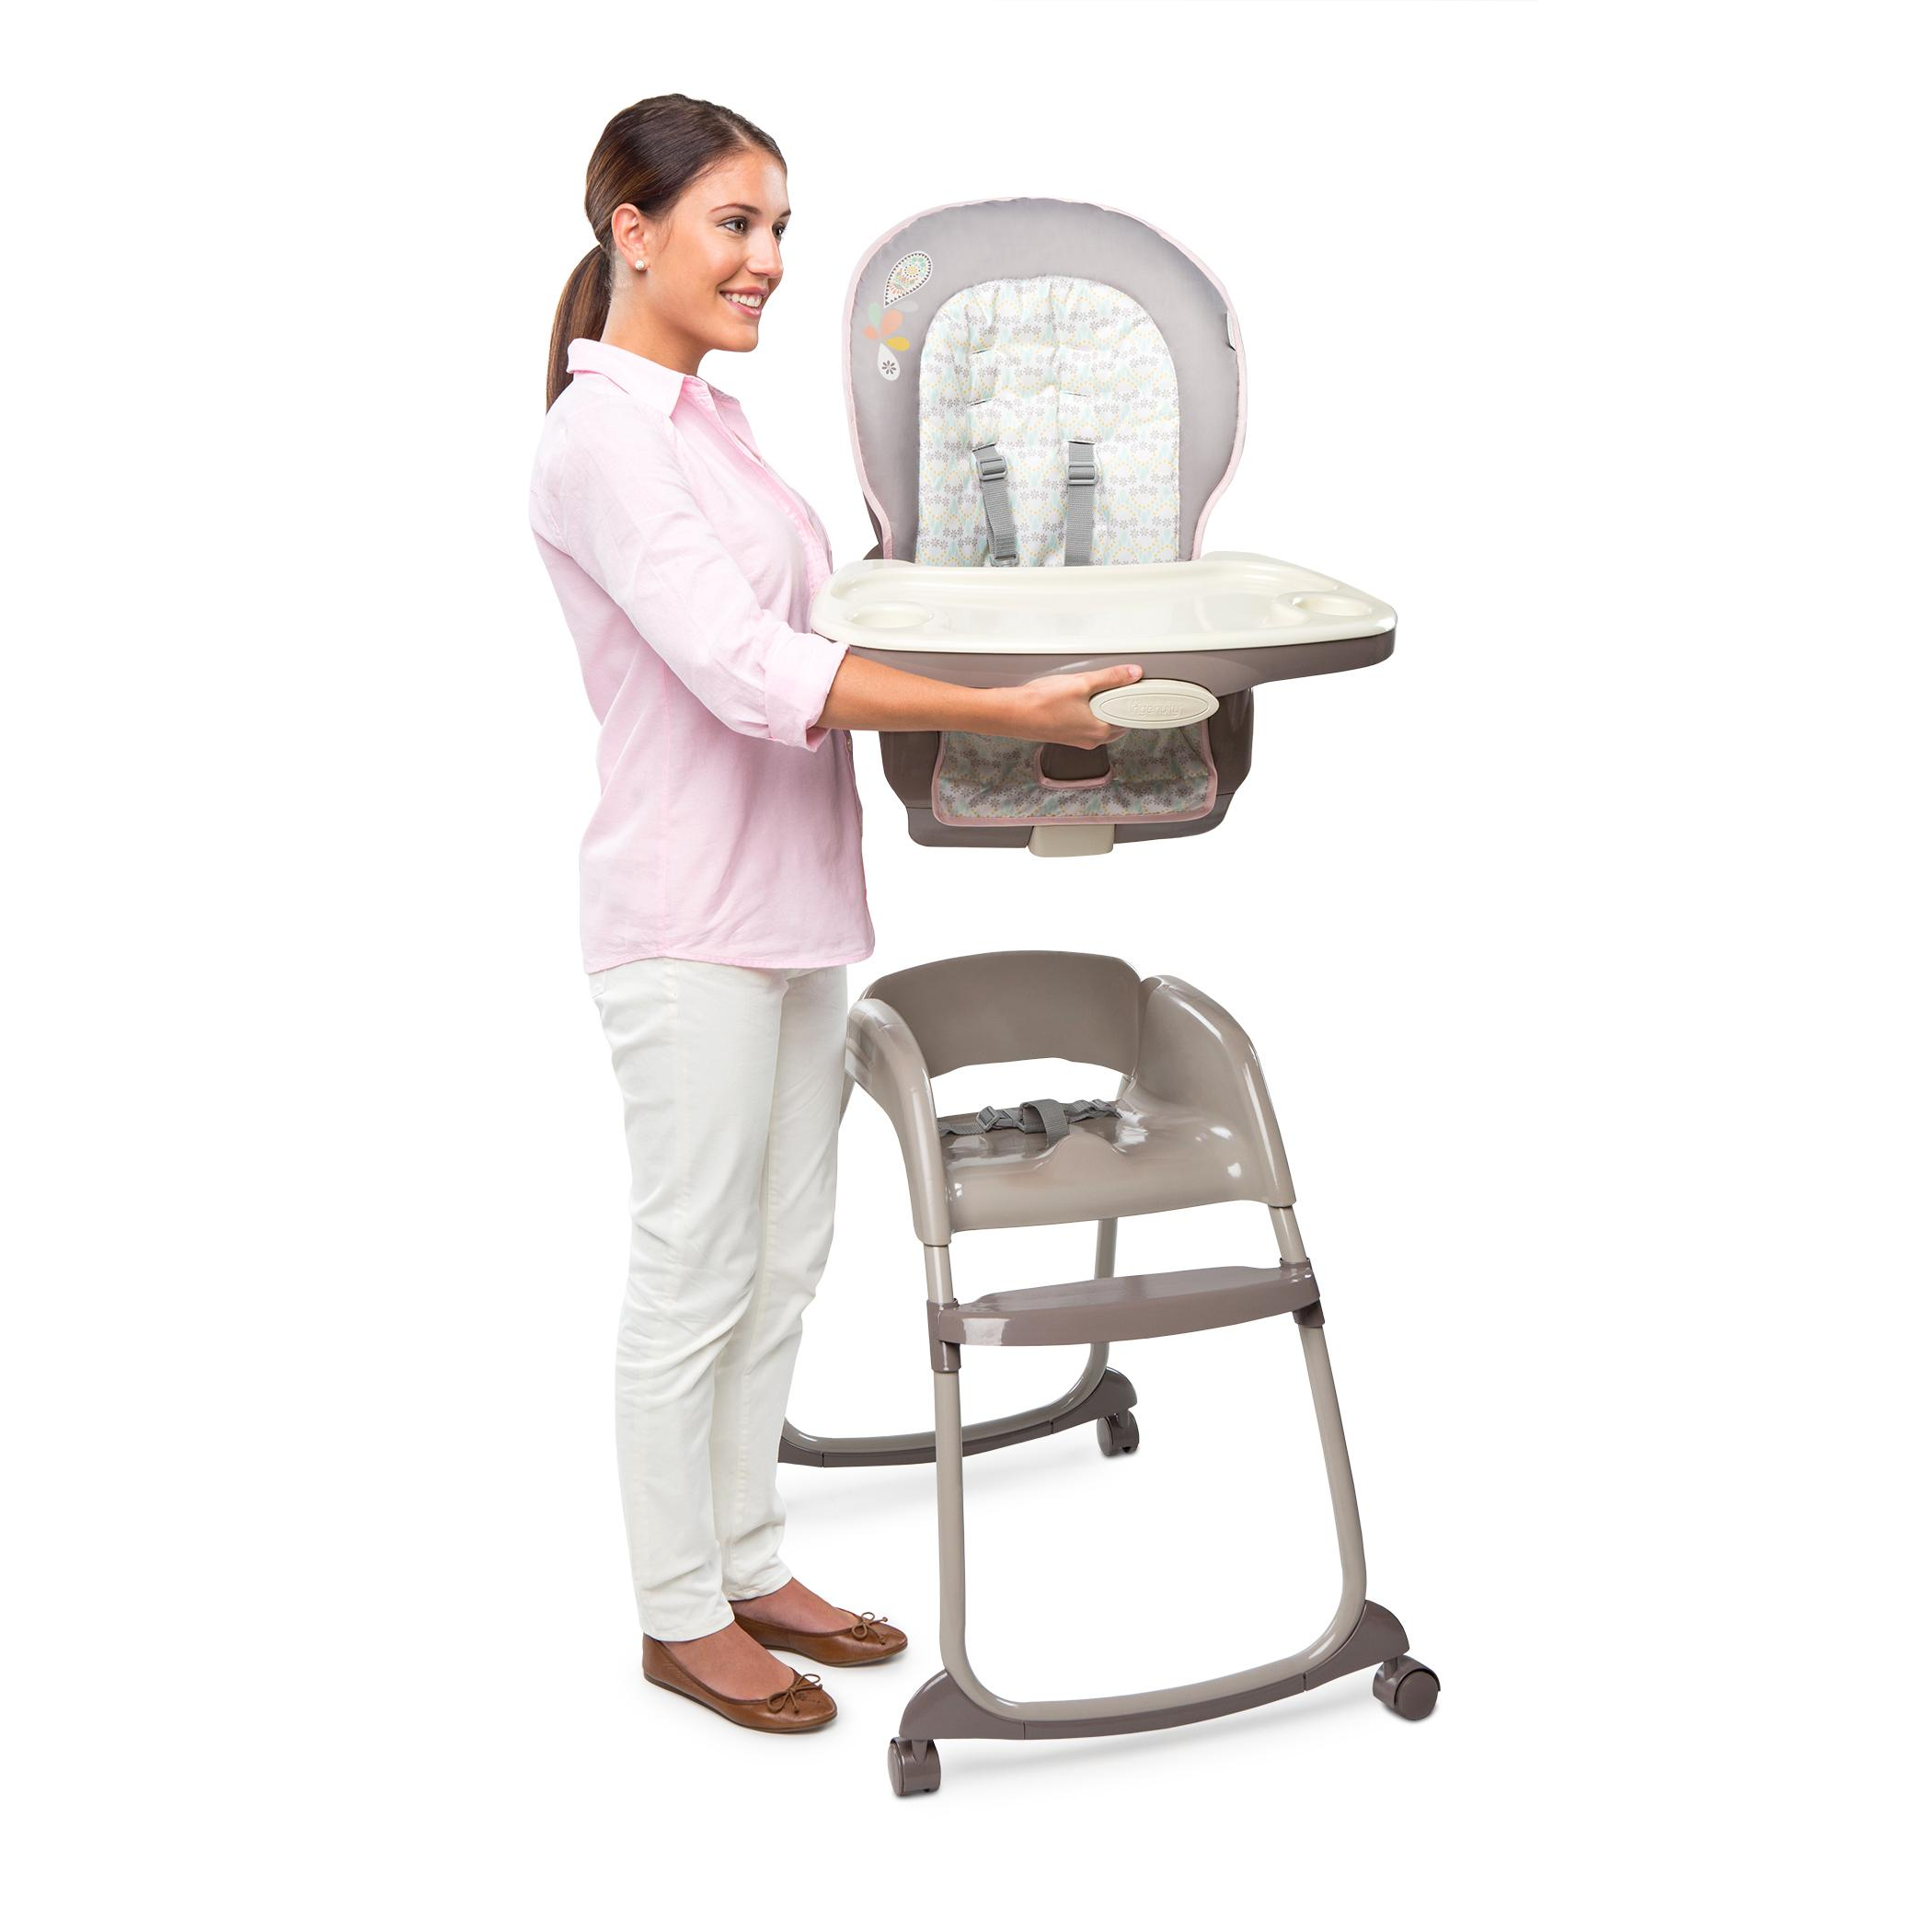 high chairs amazon rounded corner chair rail ingenuity trio 3 in 1 avondale baby